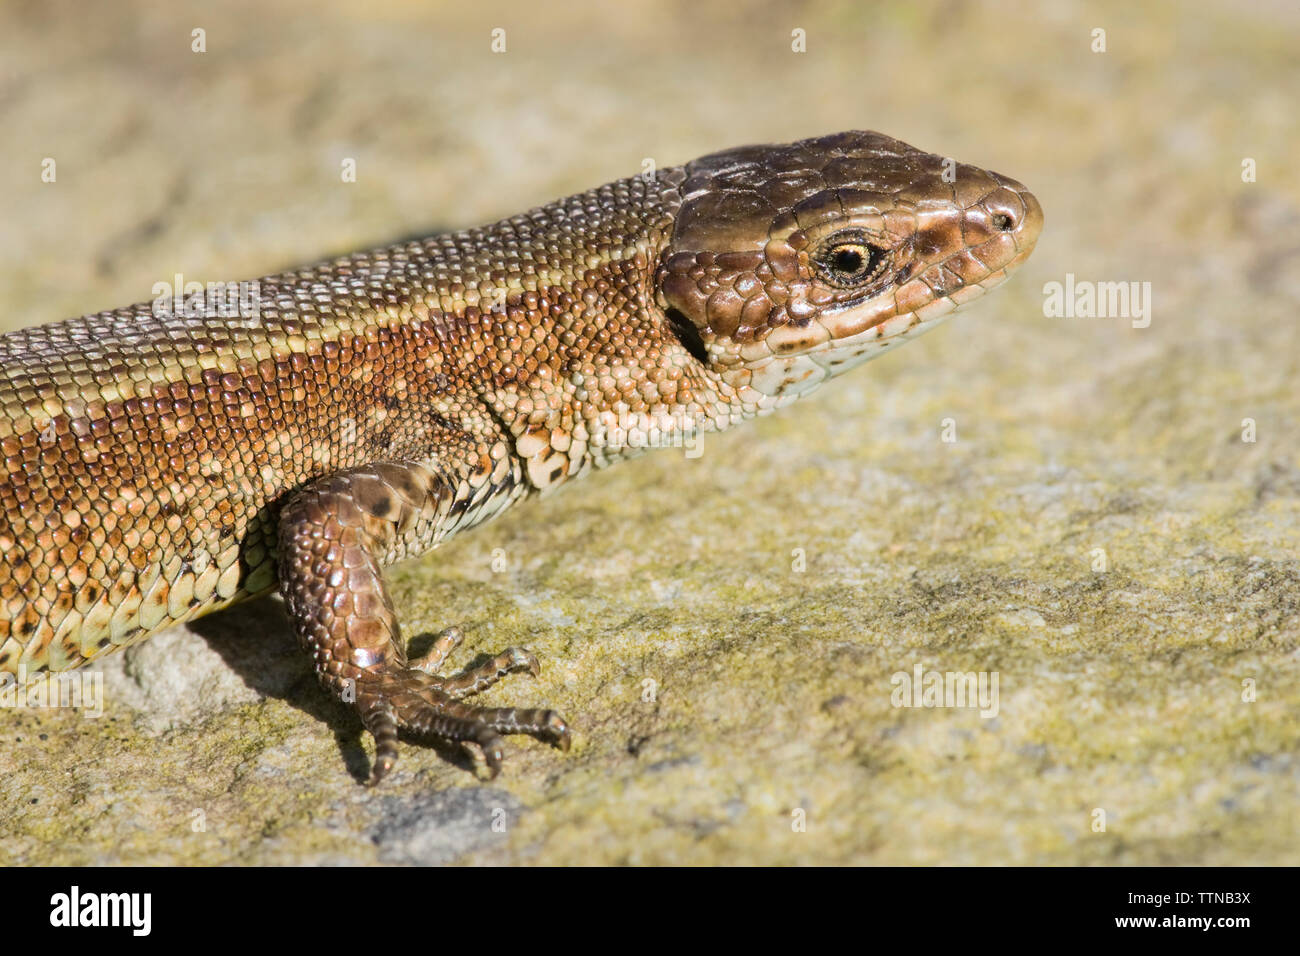 Common Lizard or Viviparous lizard [Lacerta vivipara], photographed in County Cork, Ireland. It is Ireland's only native reptile. - Stock Image